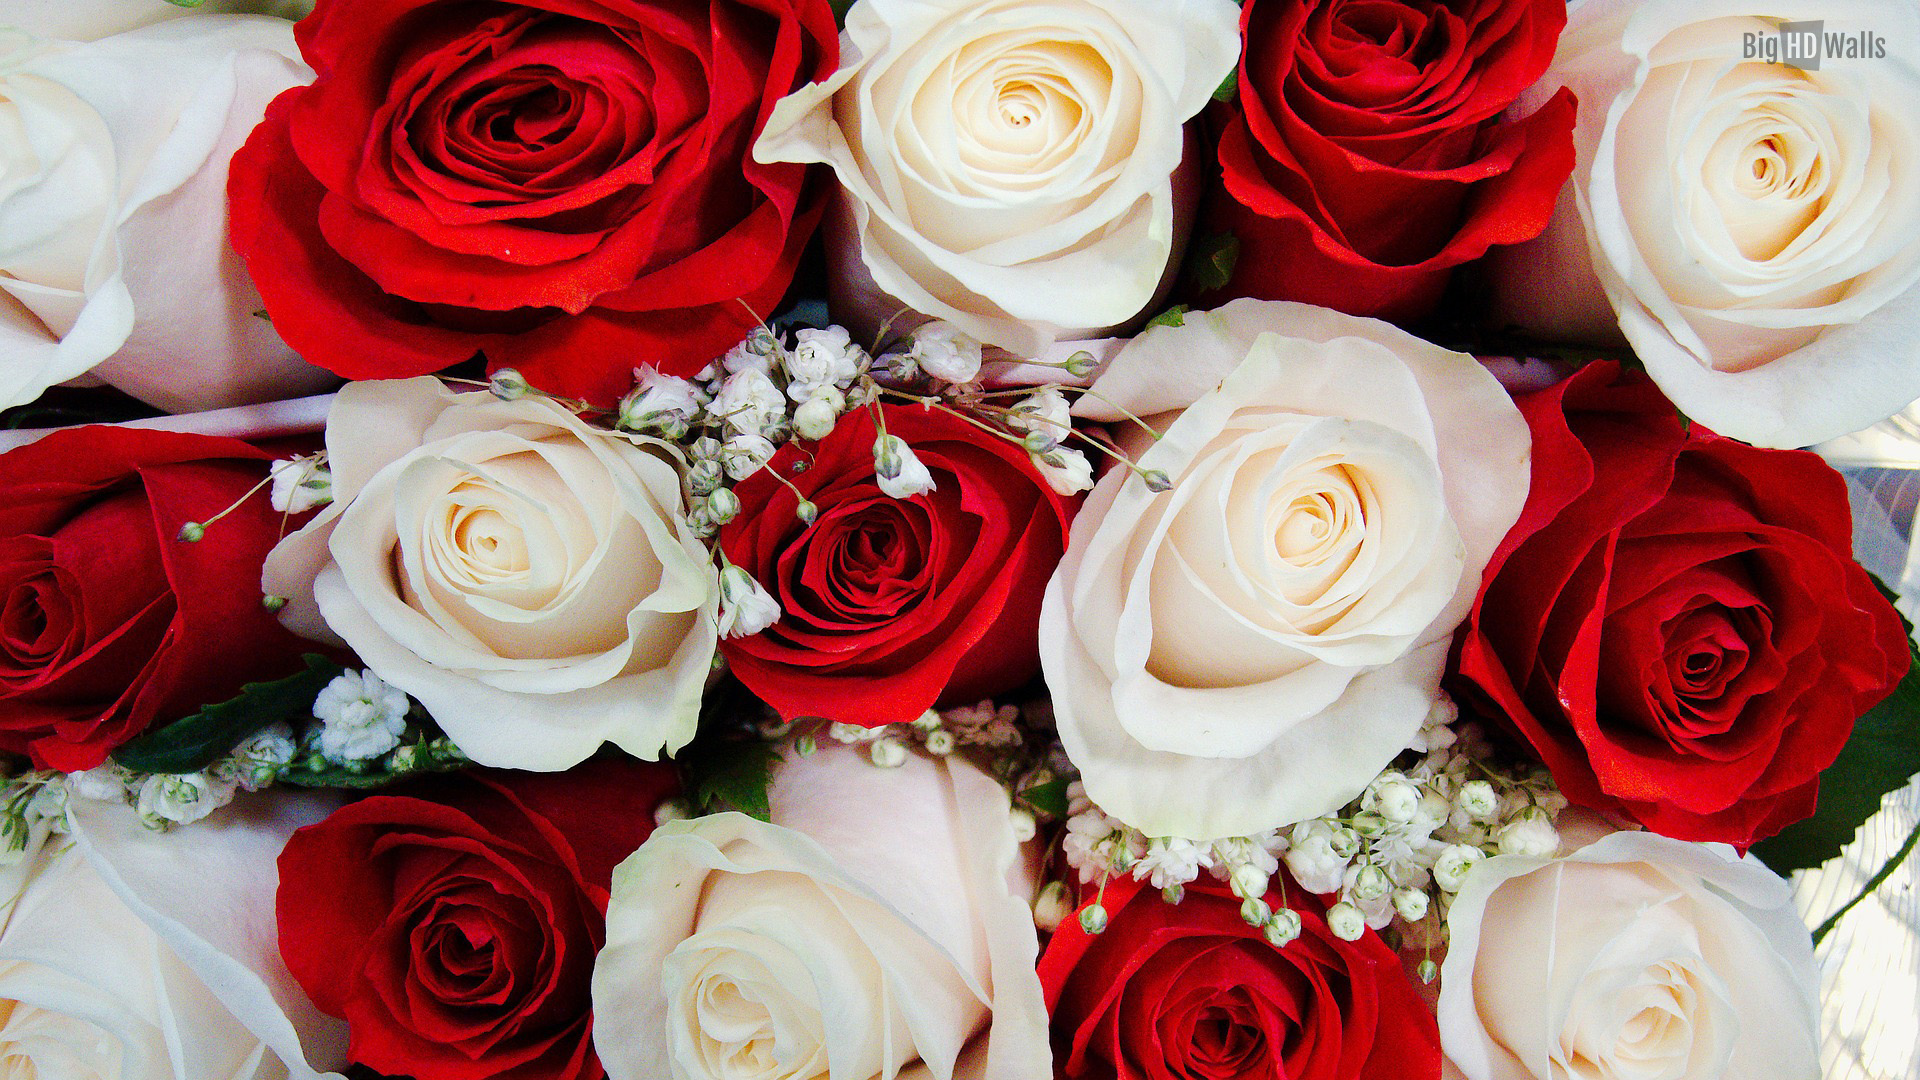 Beautiful-white-and-red-roses-BigHDWalls-wallpaper-wp3803004